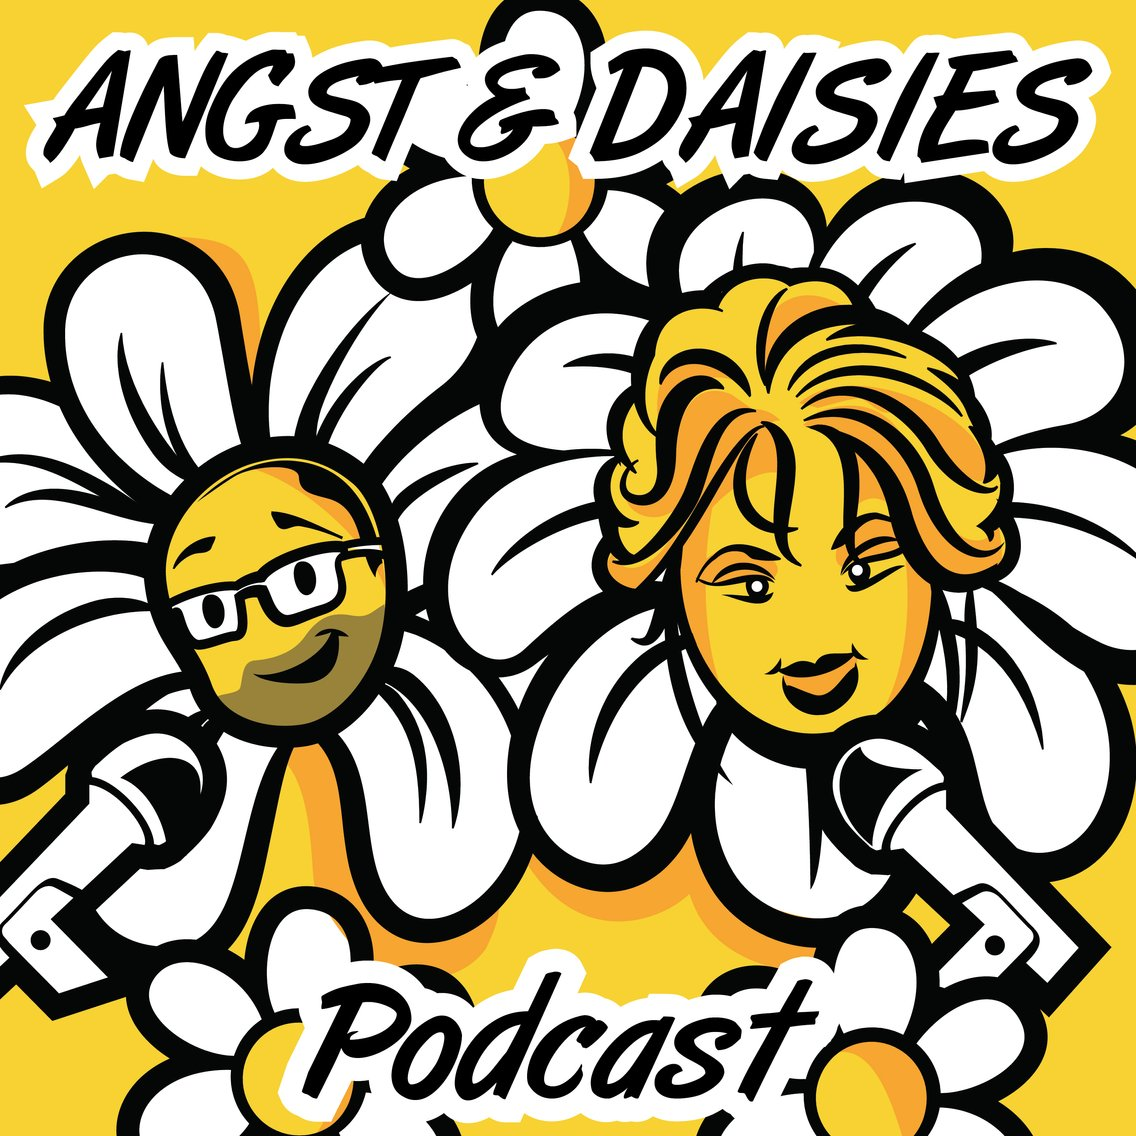 Angst & Daisies - Cover Image